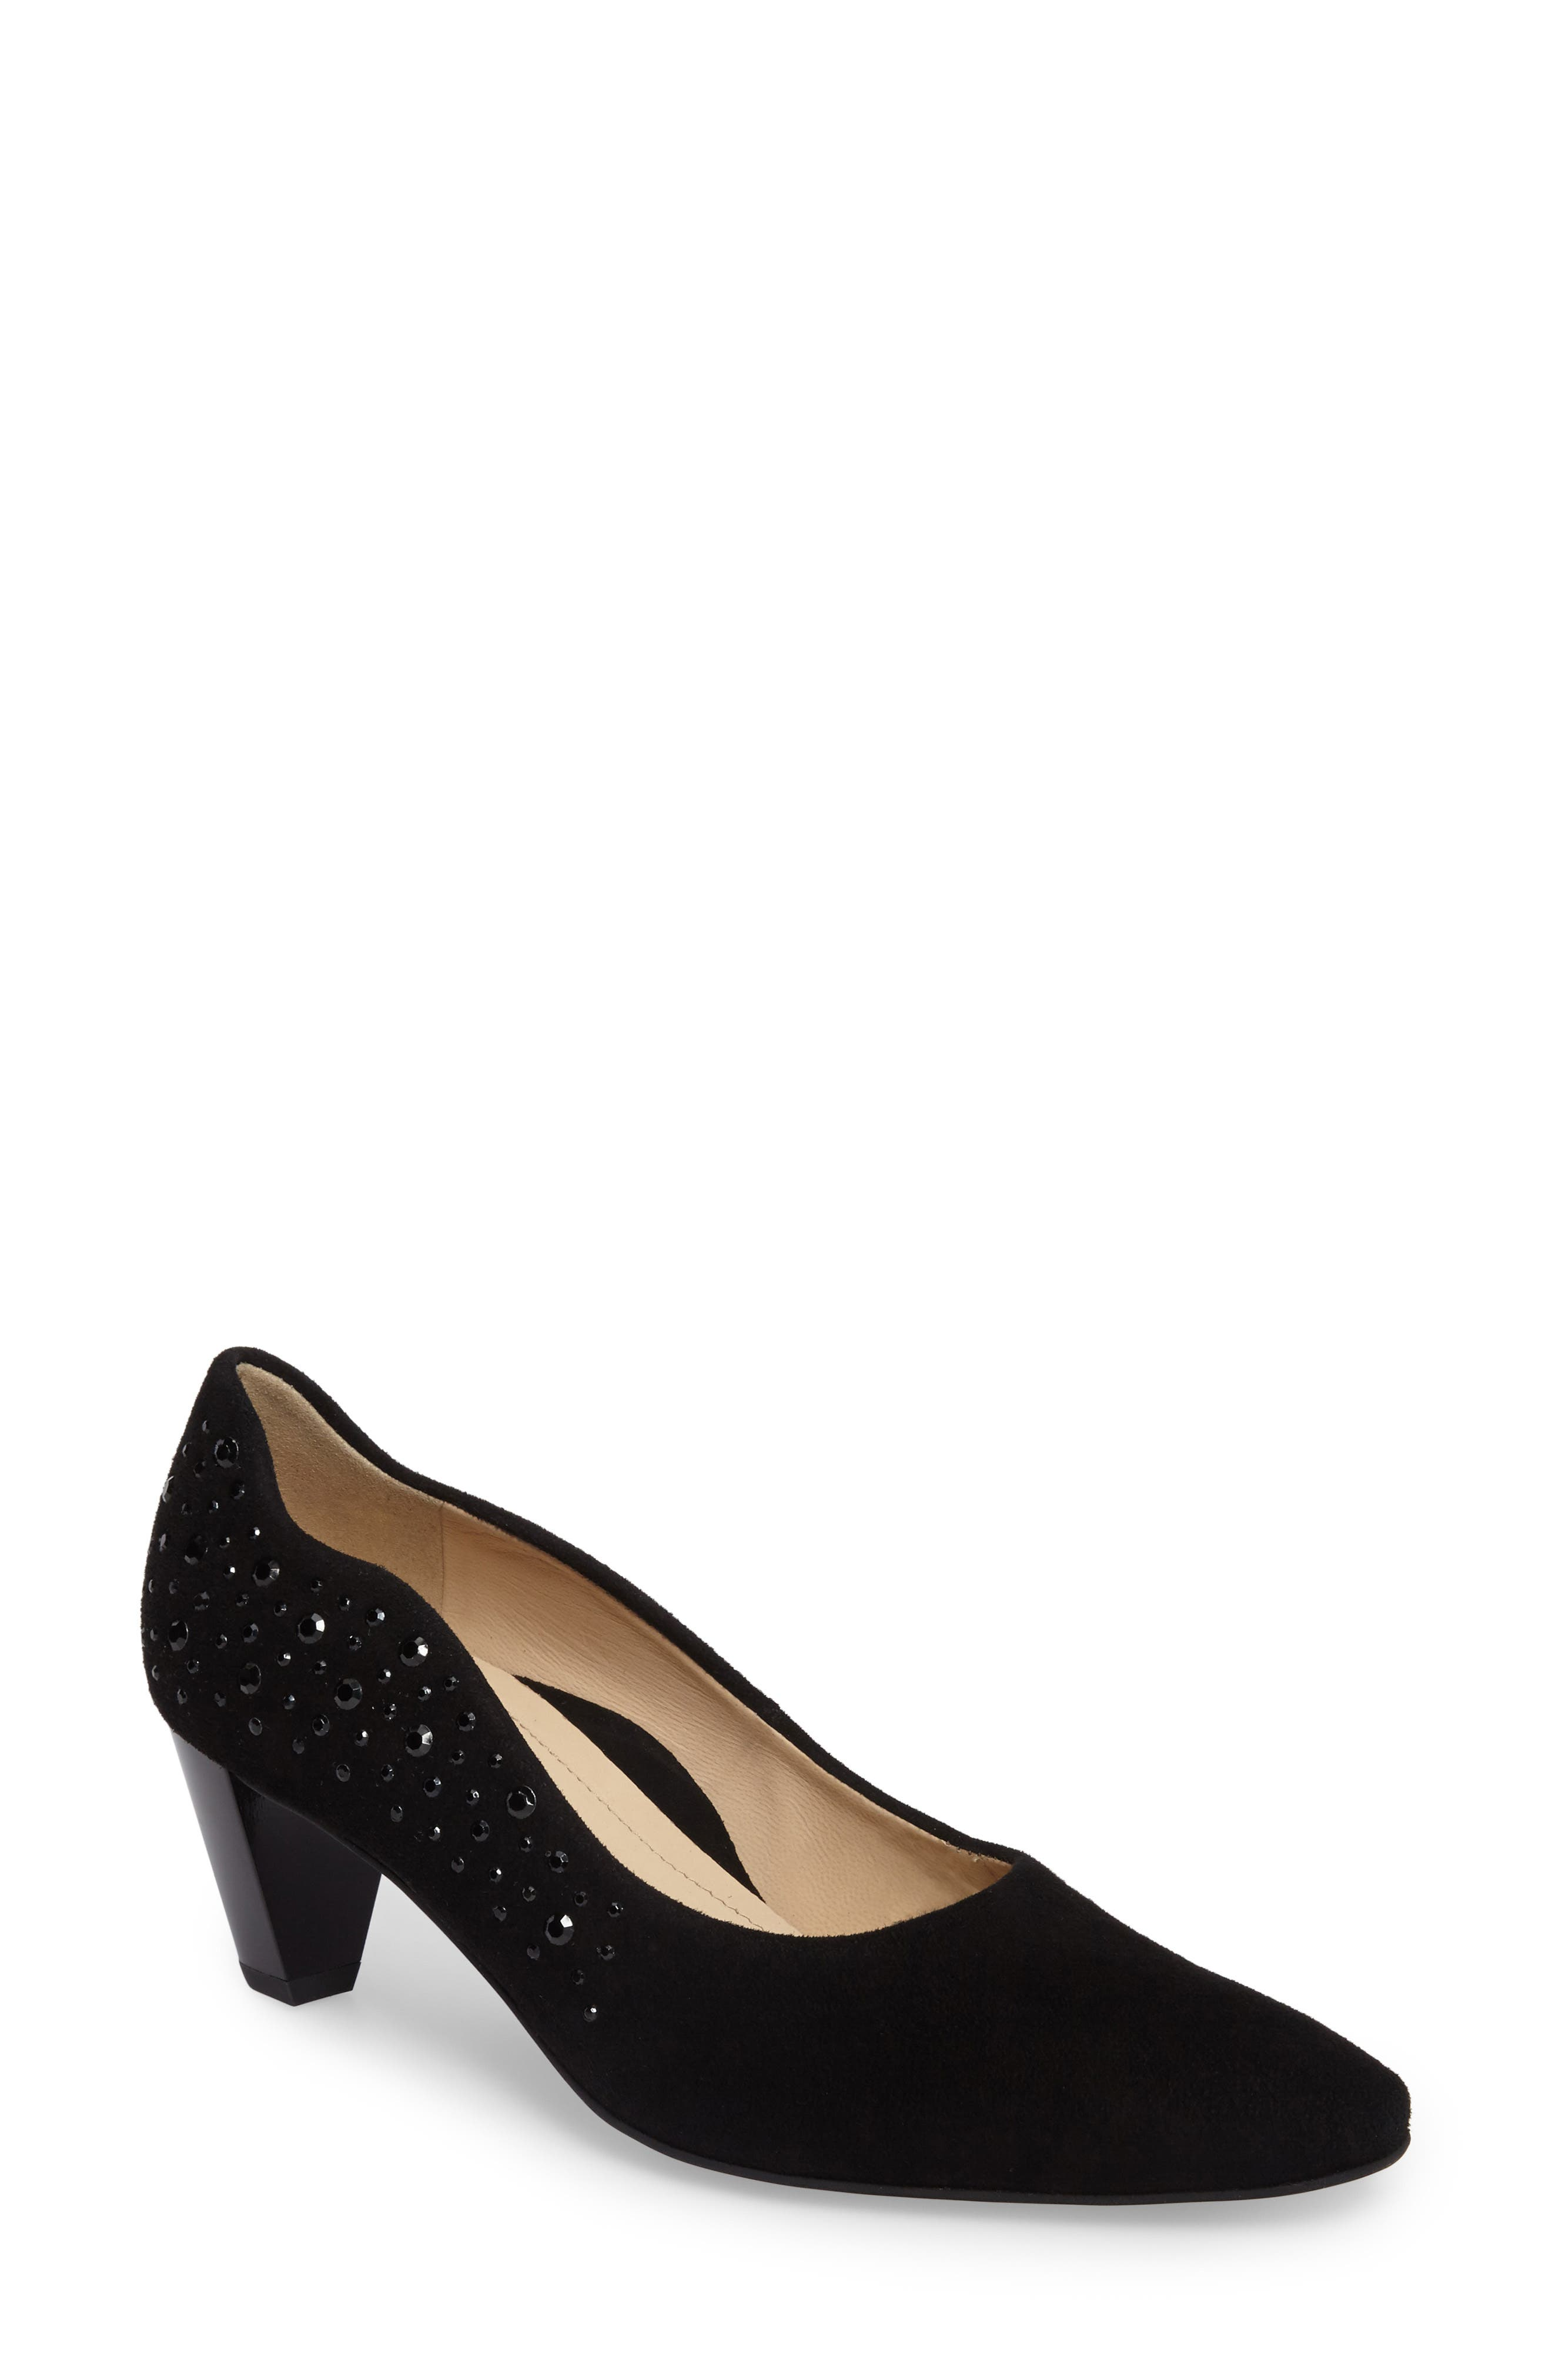 Pippa Crystal Embellished Pump,                             Main thumbnail 1, color,                             Black Suede